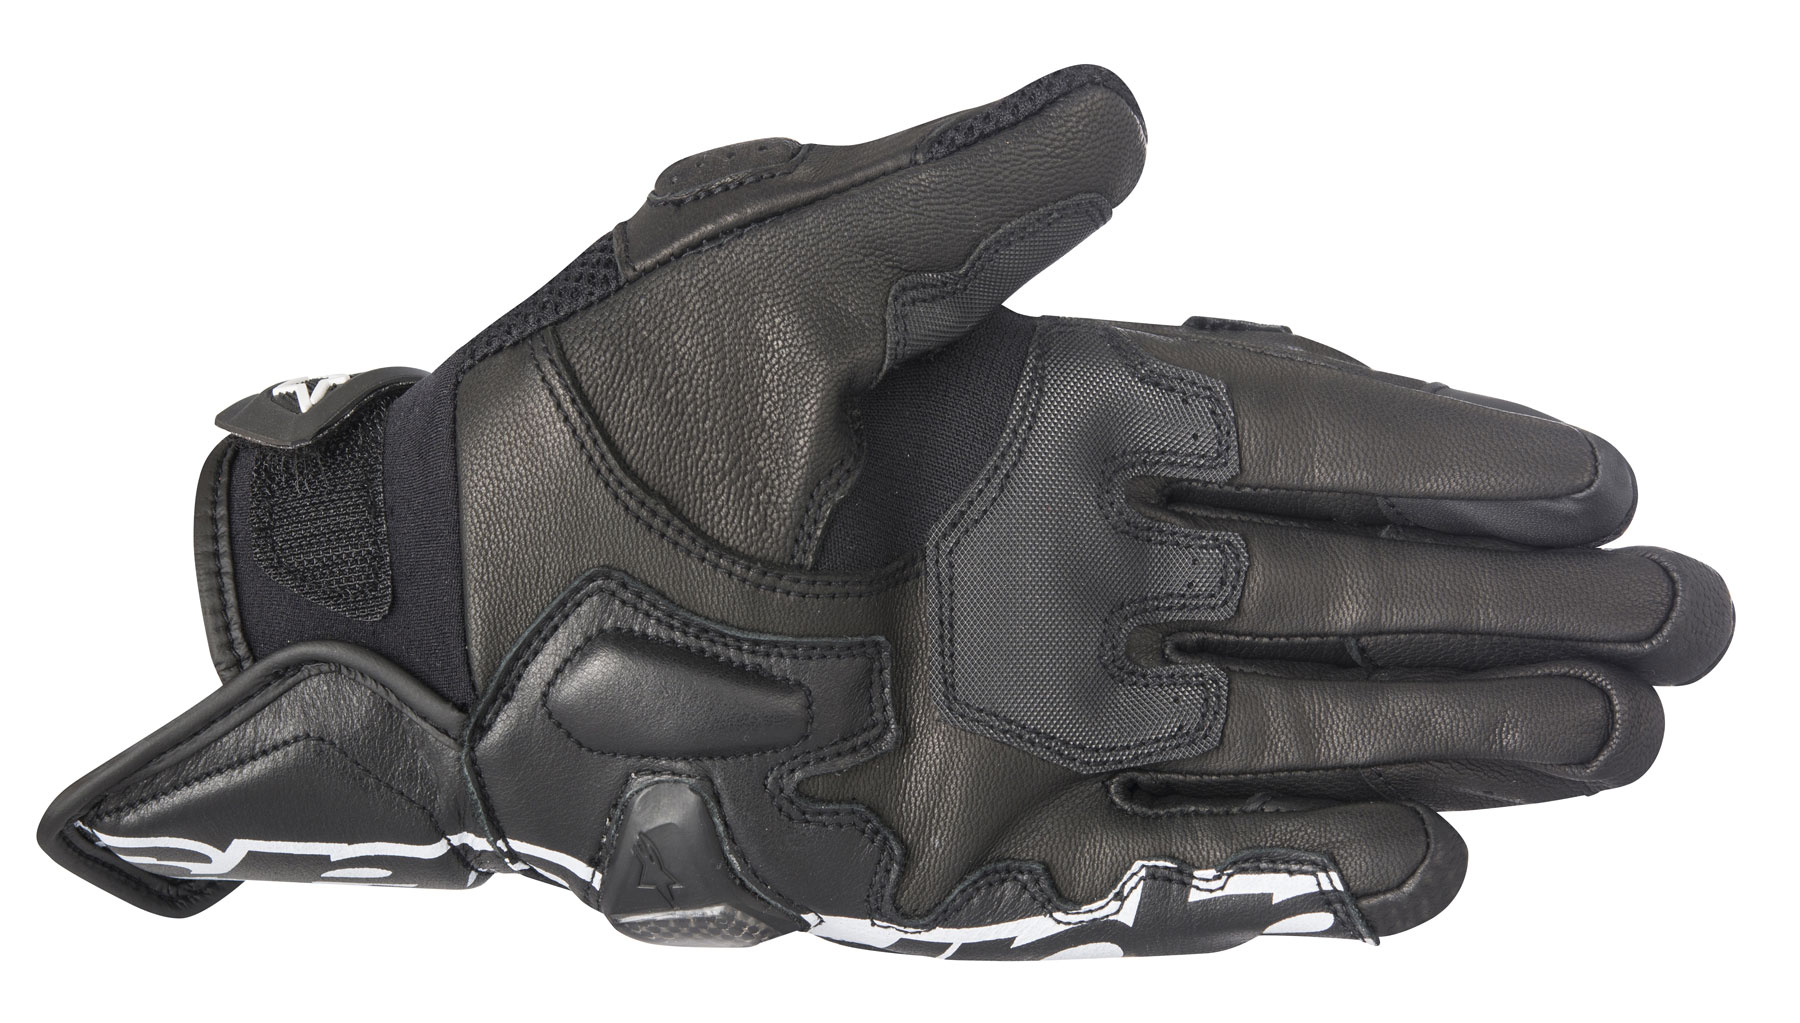 Black riding gloves - Quick View